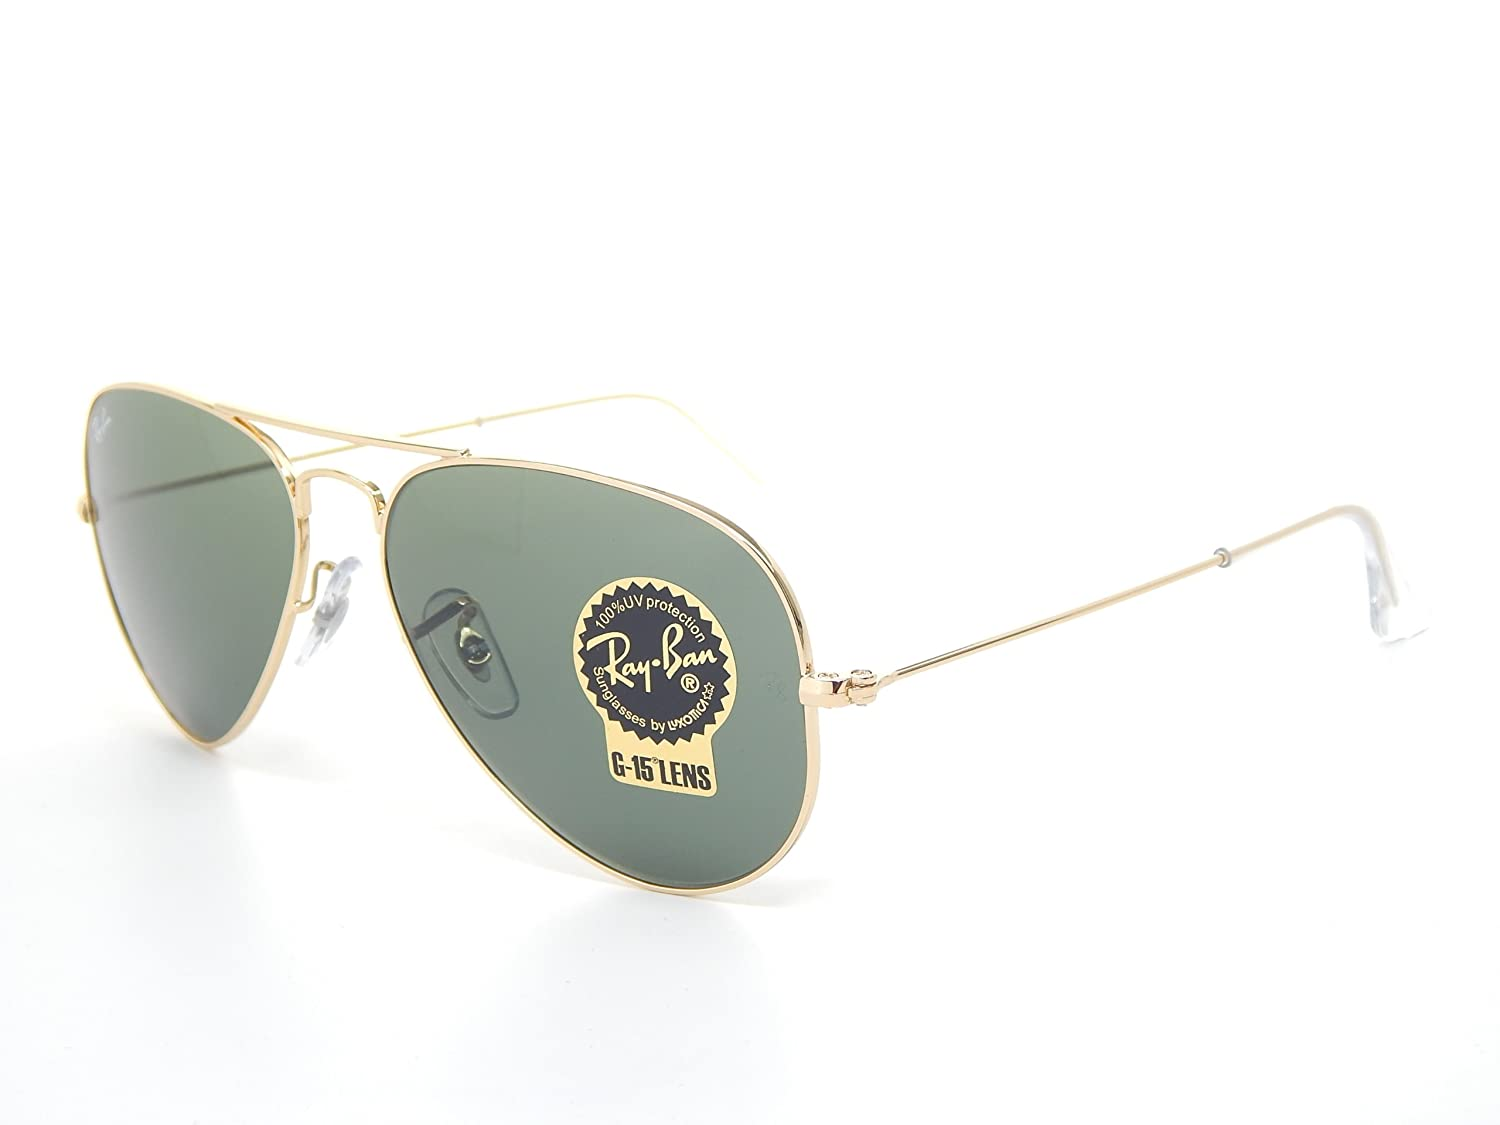 93212afd51 Amazon.com  Ray Ban Aviator RB3025 W3234 Gold  Green Classic G-15 55mm  Sunglasses  Clothing